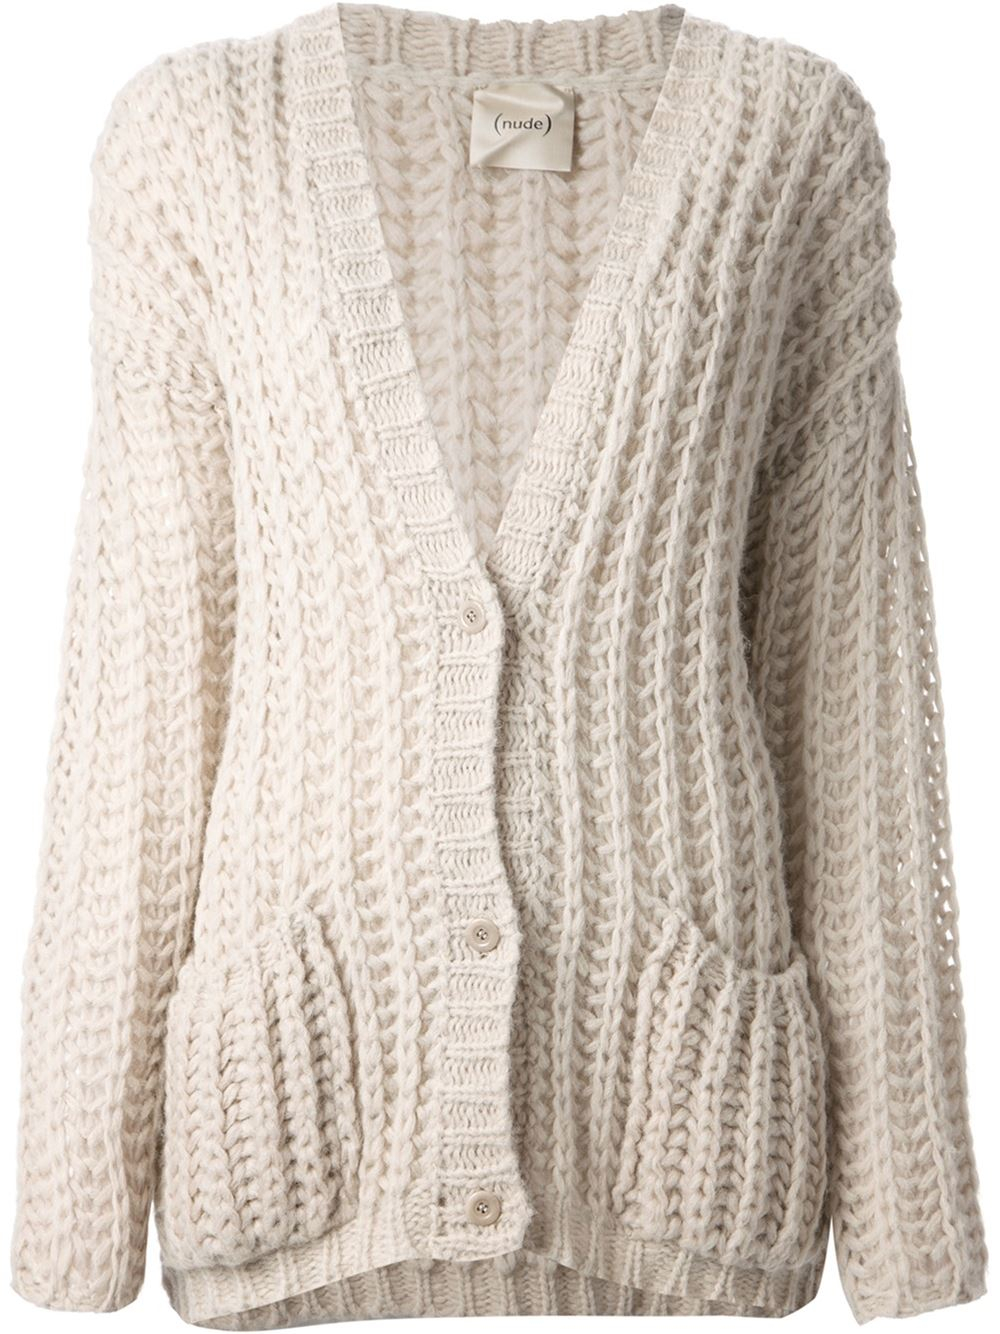 Knitting Pattern For A Chunky Cardigan : Nude Chunky Knit Cardigan in Natural Lyst